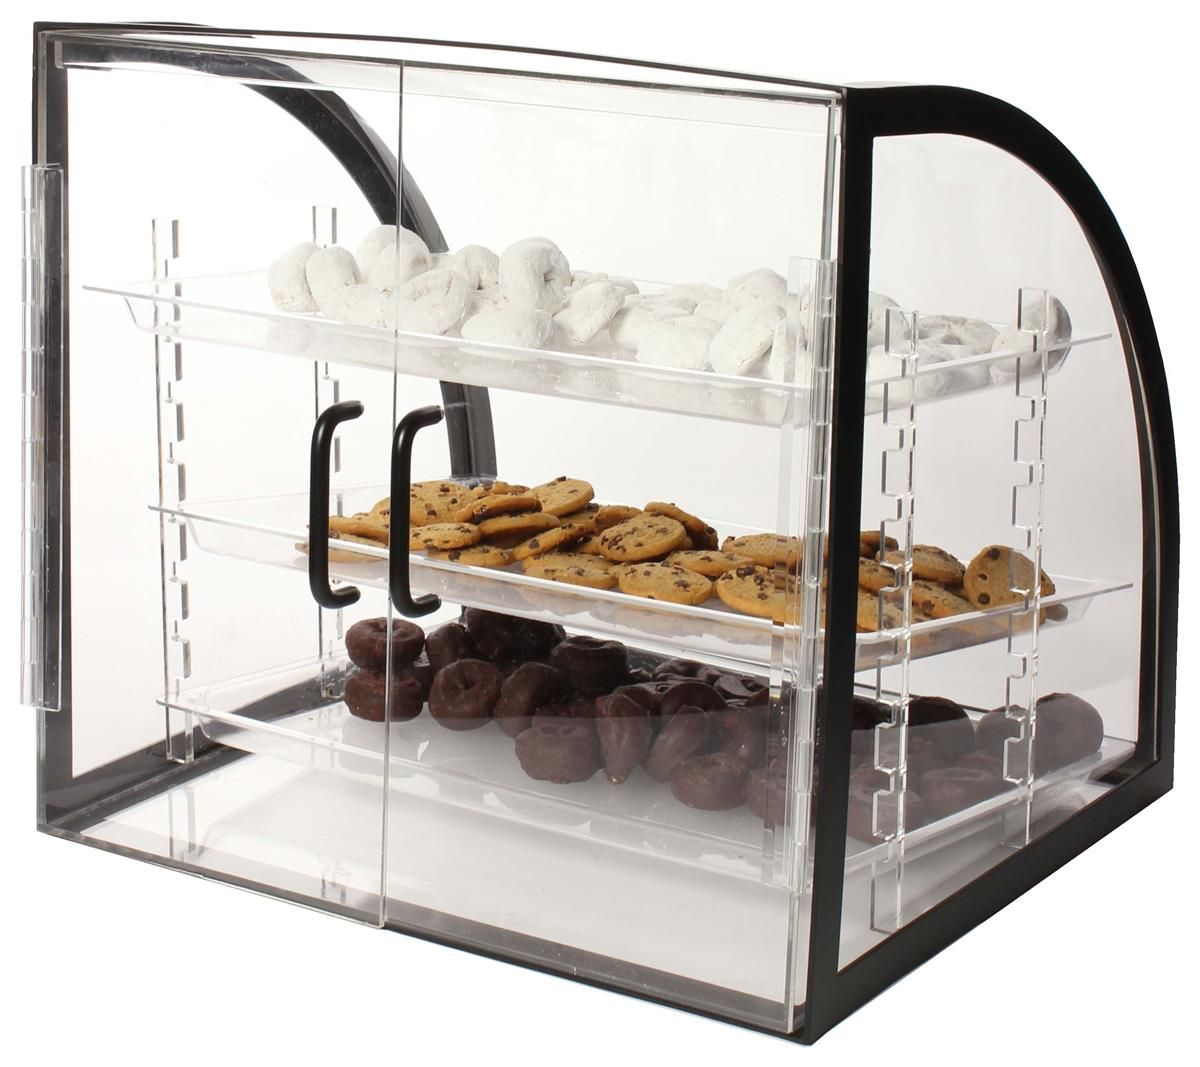 Bakery Display Cabinet Acrylic Food Display Case W 3 Plastic Trays Black Frame In